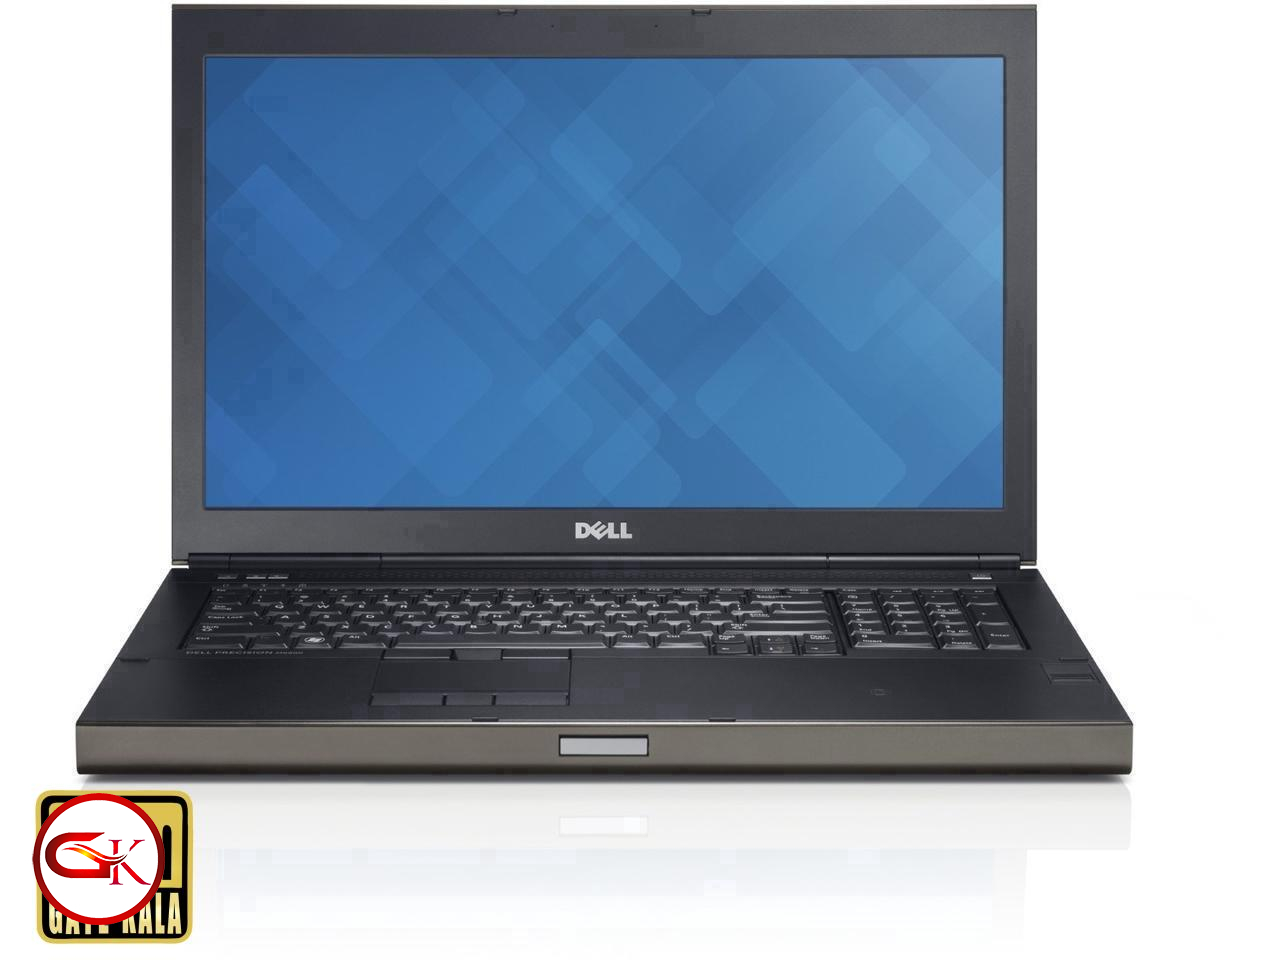 لپ تاپ دل |DELL PRESION M4800|core i7 | 8GB | 500GB | 2GB ddr5